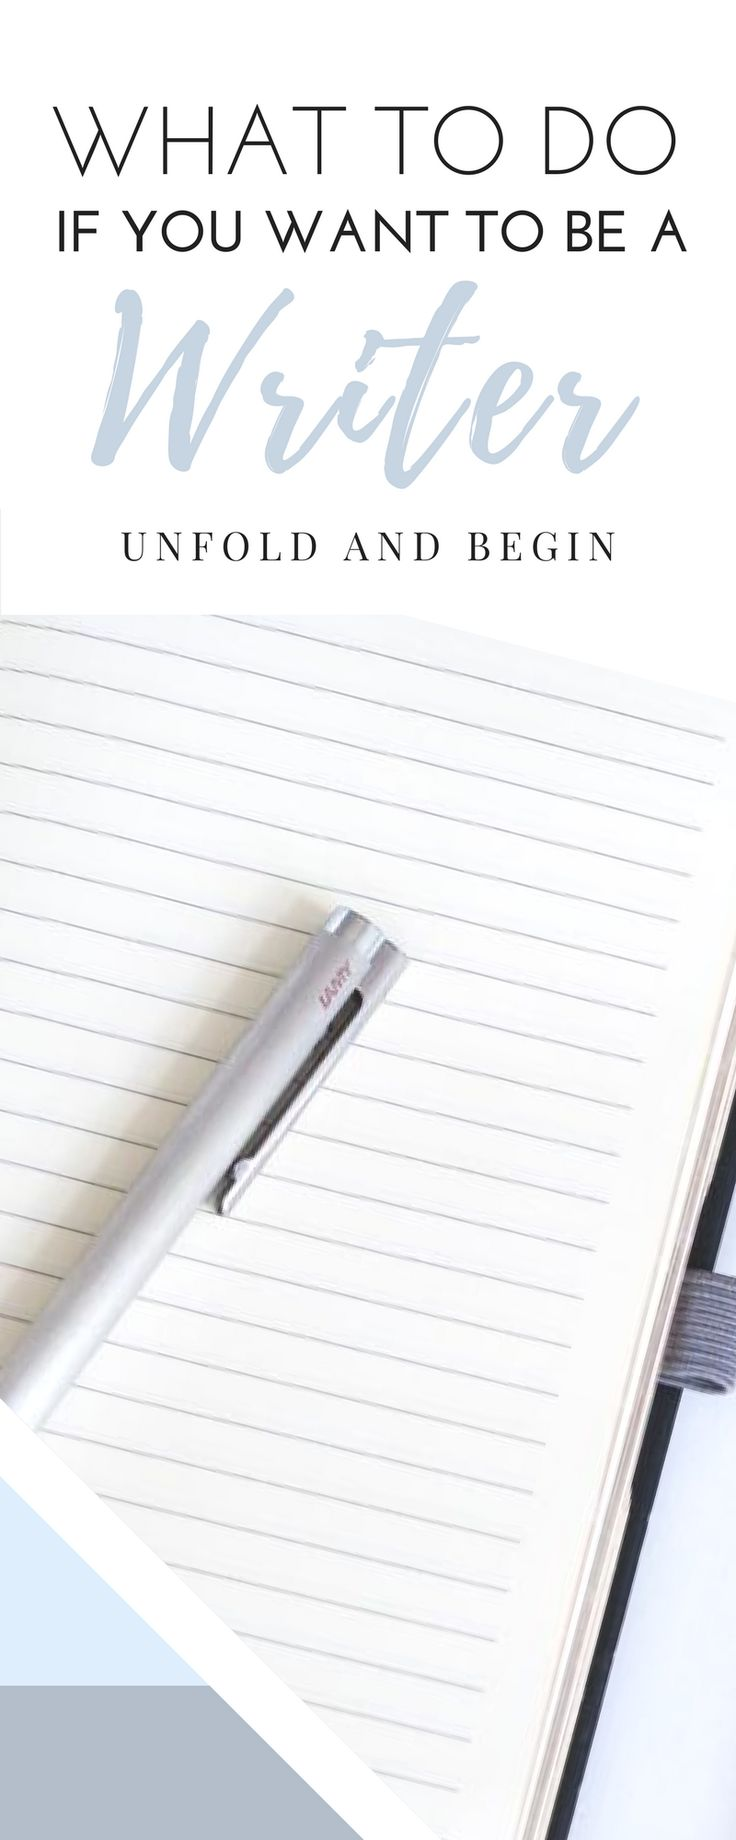 Ever wanted to be a writer? Here are some useful ideas to get you started on your writing journey #writingtips #writer #writingideas #writing